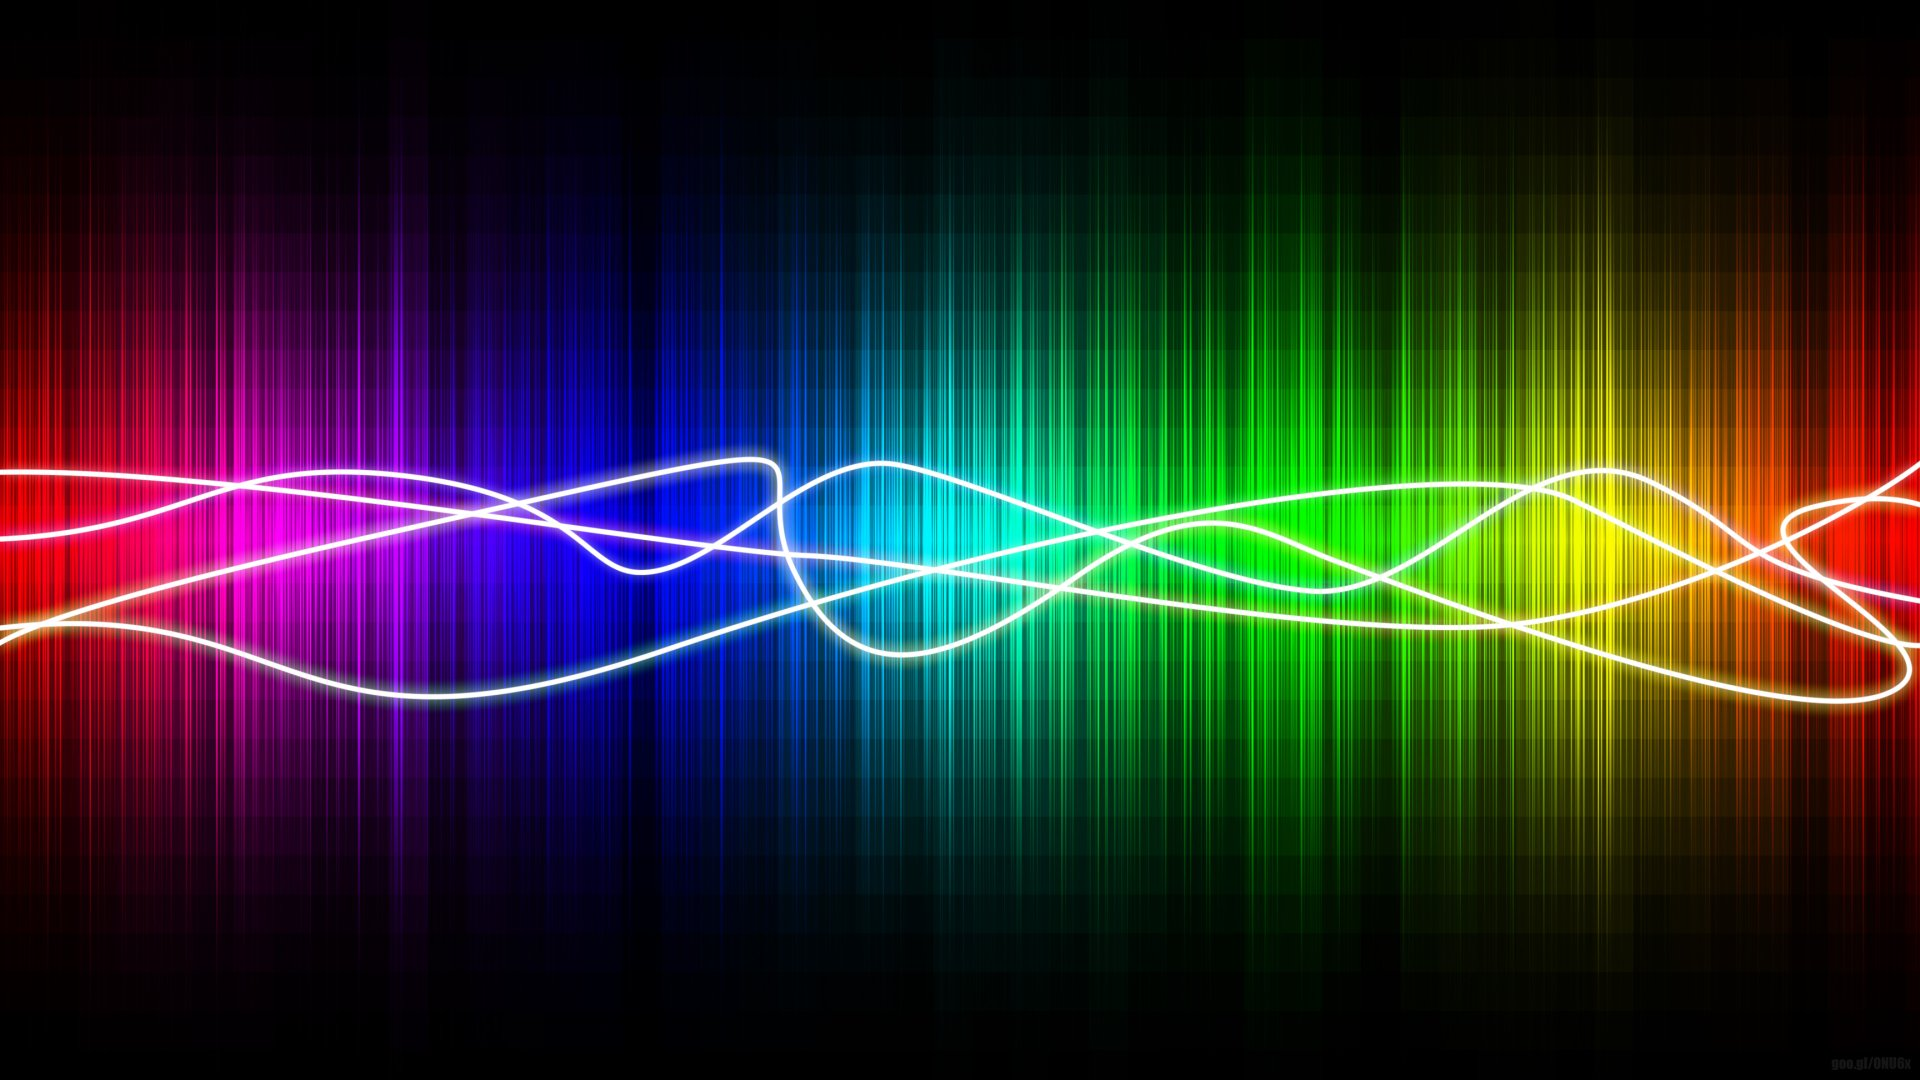 Abstract - Colors  Rainbow Spectrum Lines Dark Abstract Wallpaper